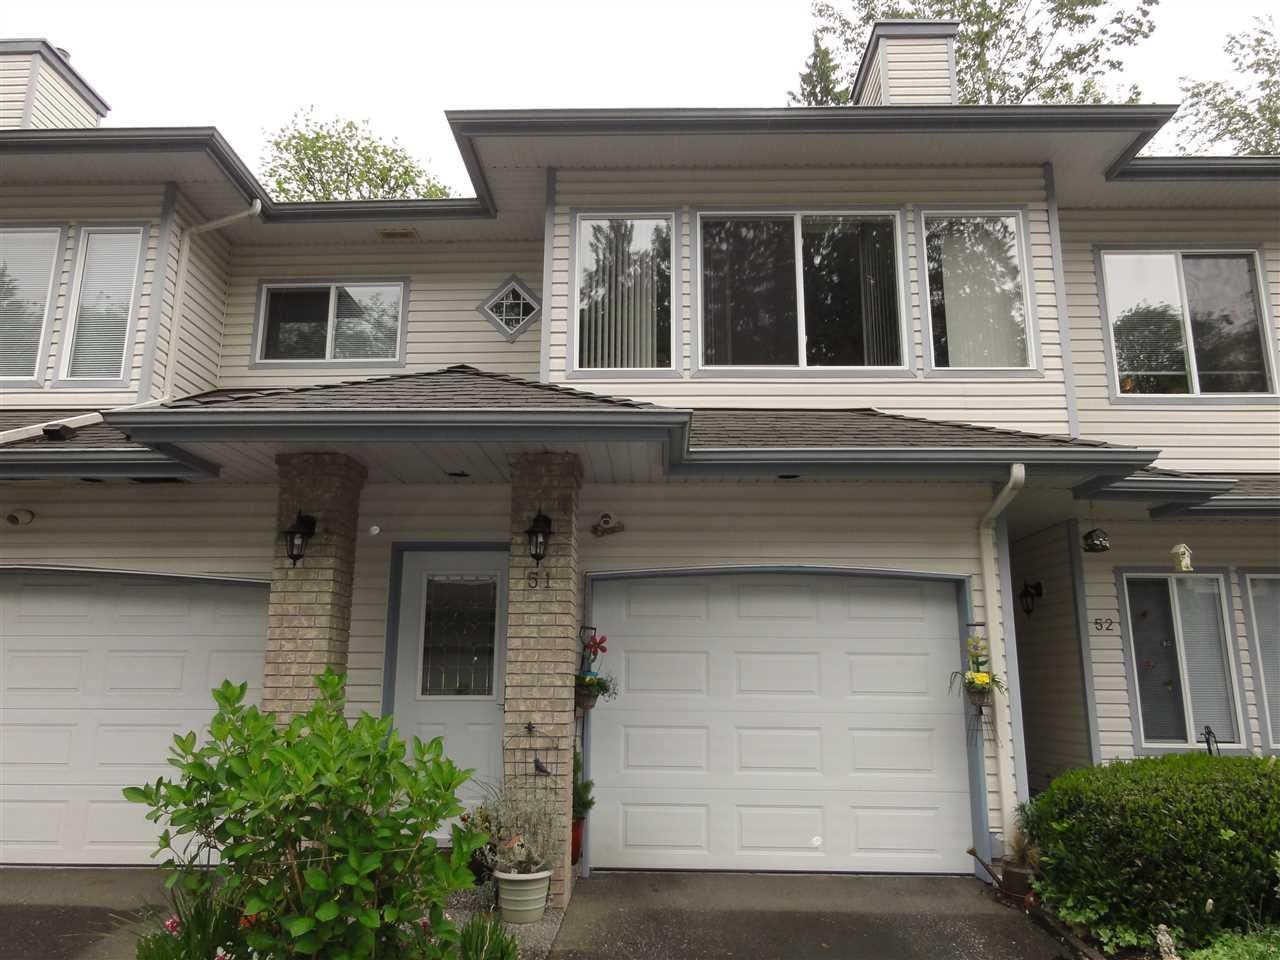 R2061158 - 51 21579 88B AVENUE, Walnut Grove, Langley, BC - Townhouse